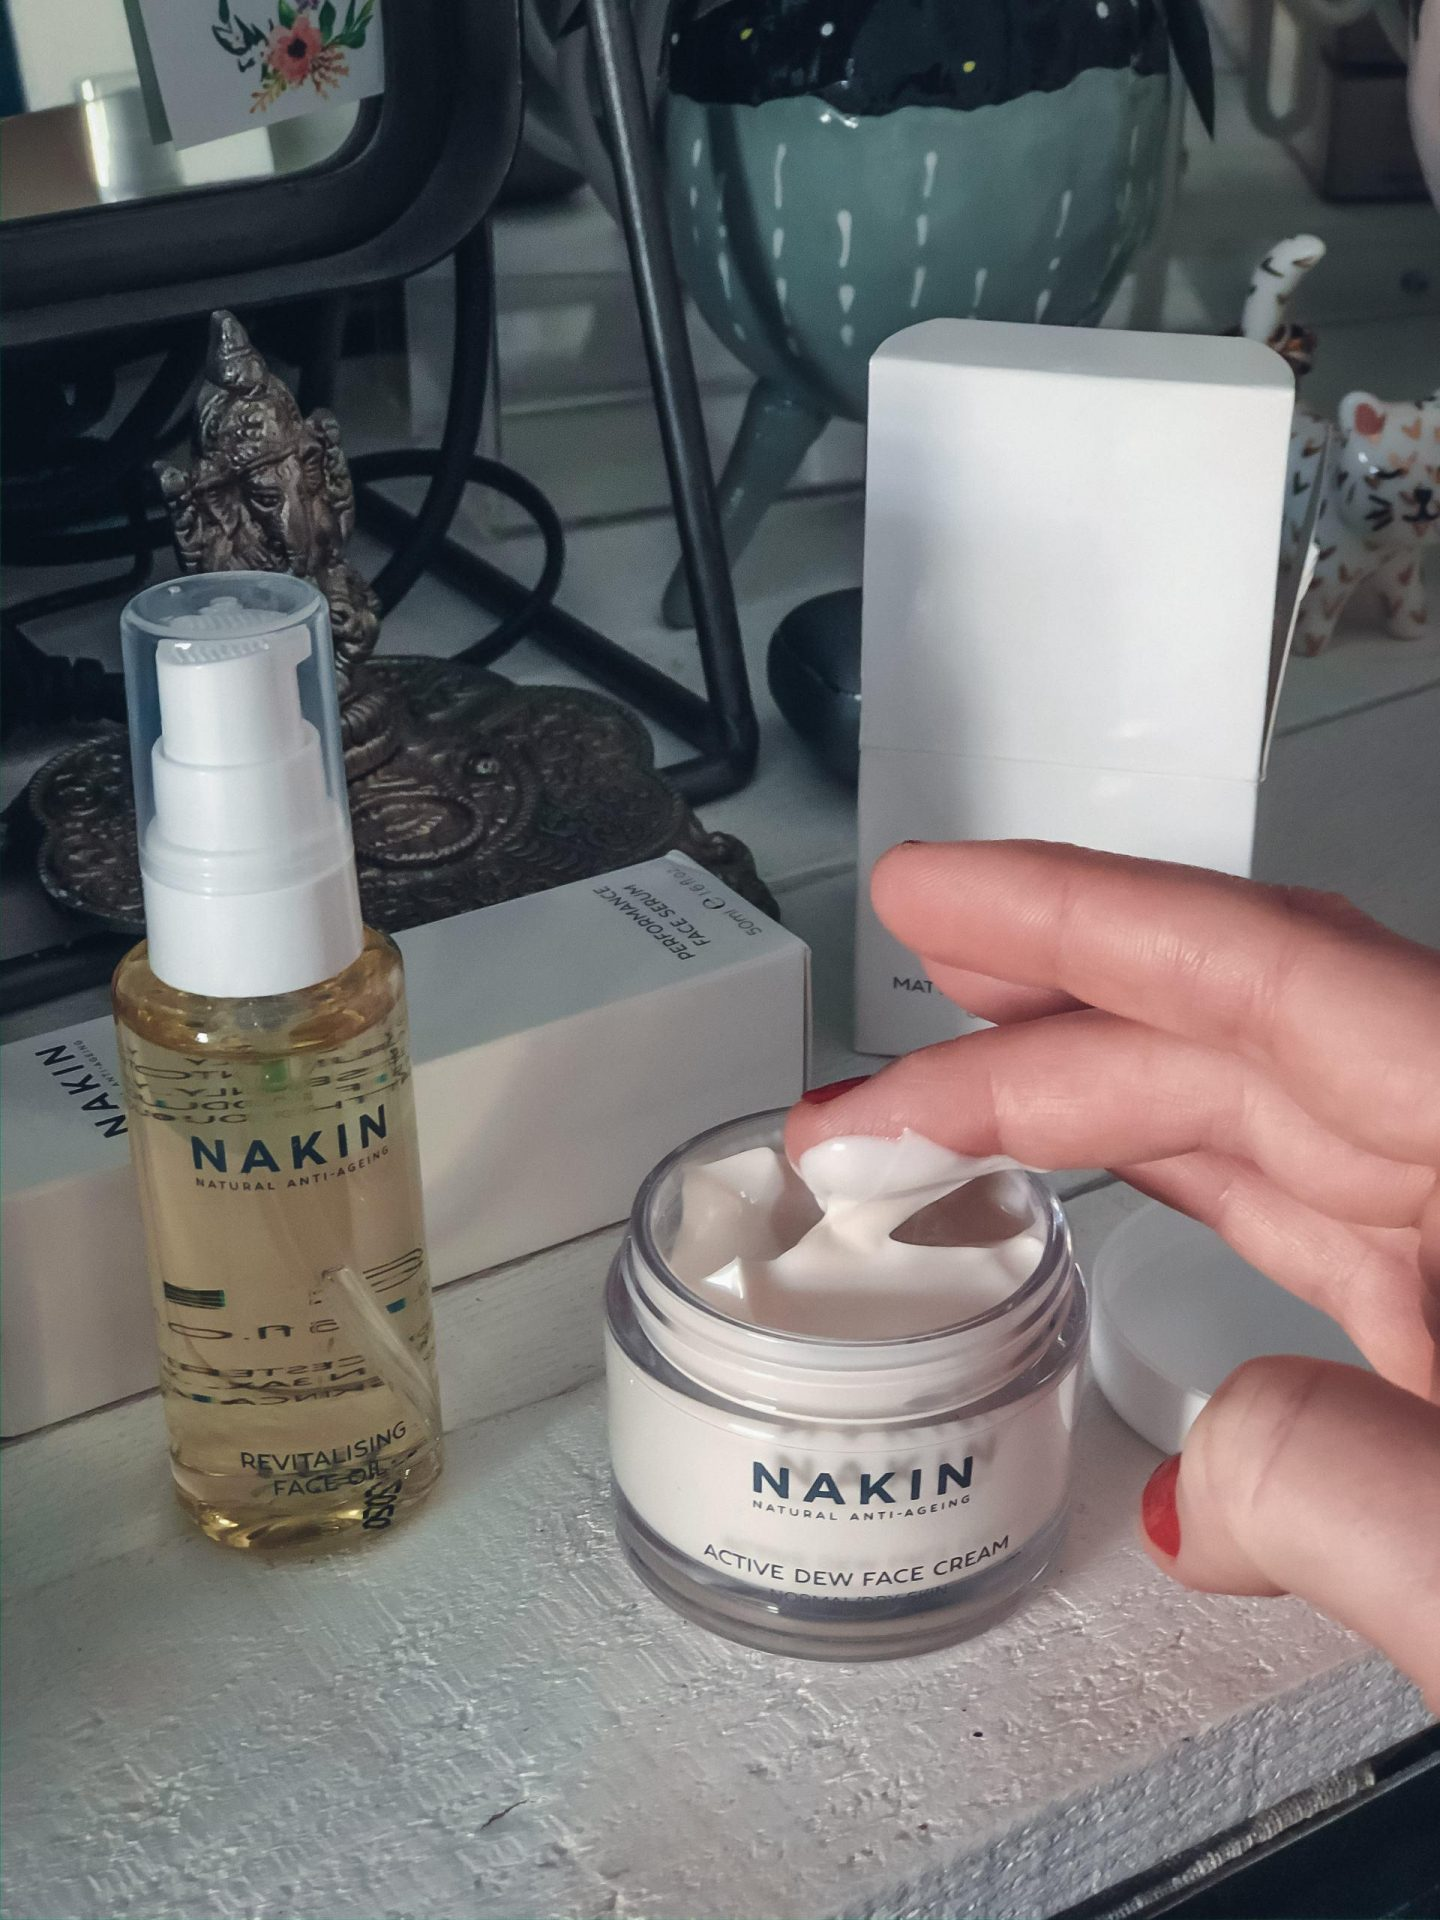 luxurious products from Nakin